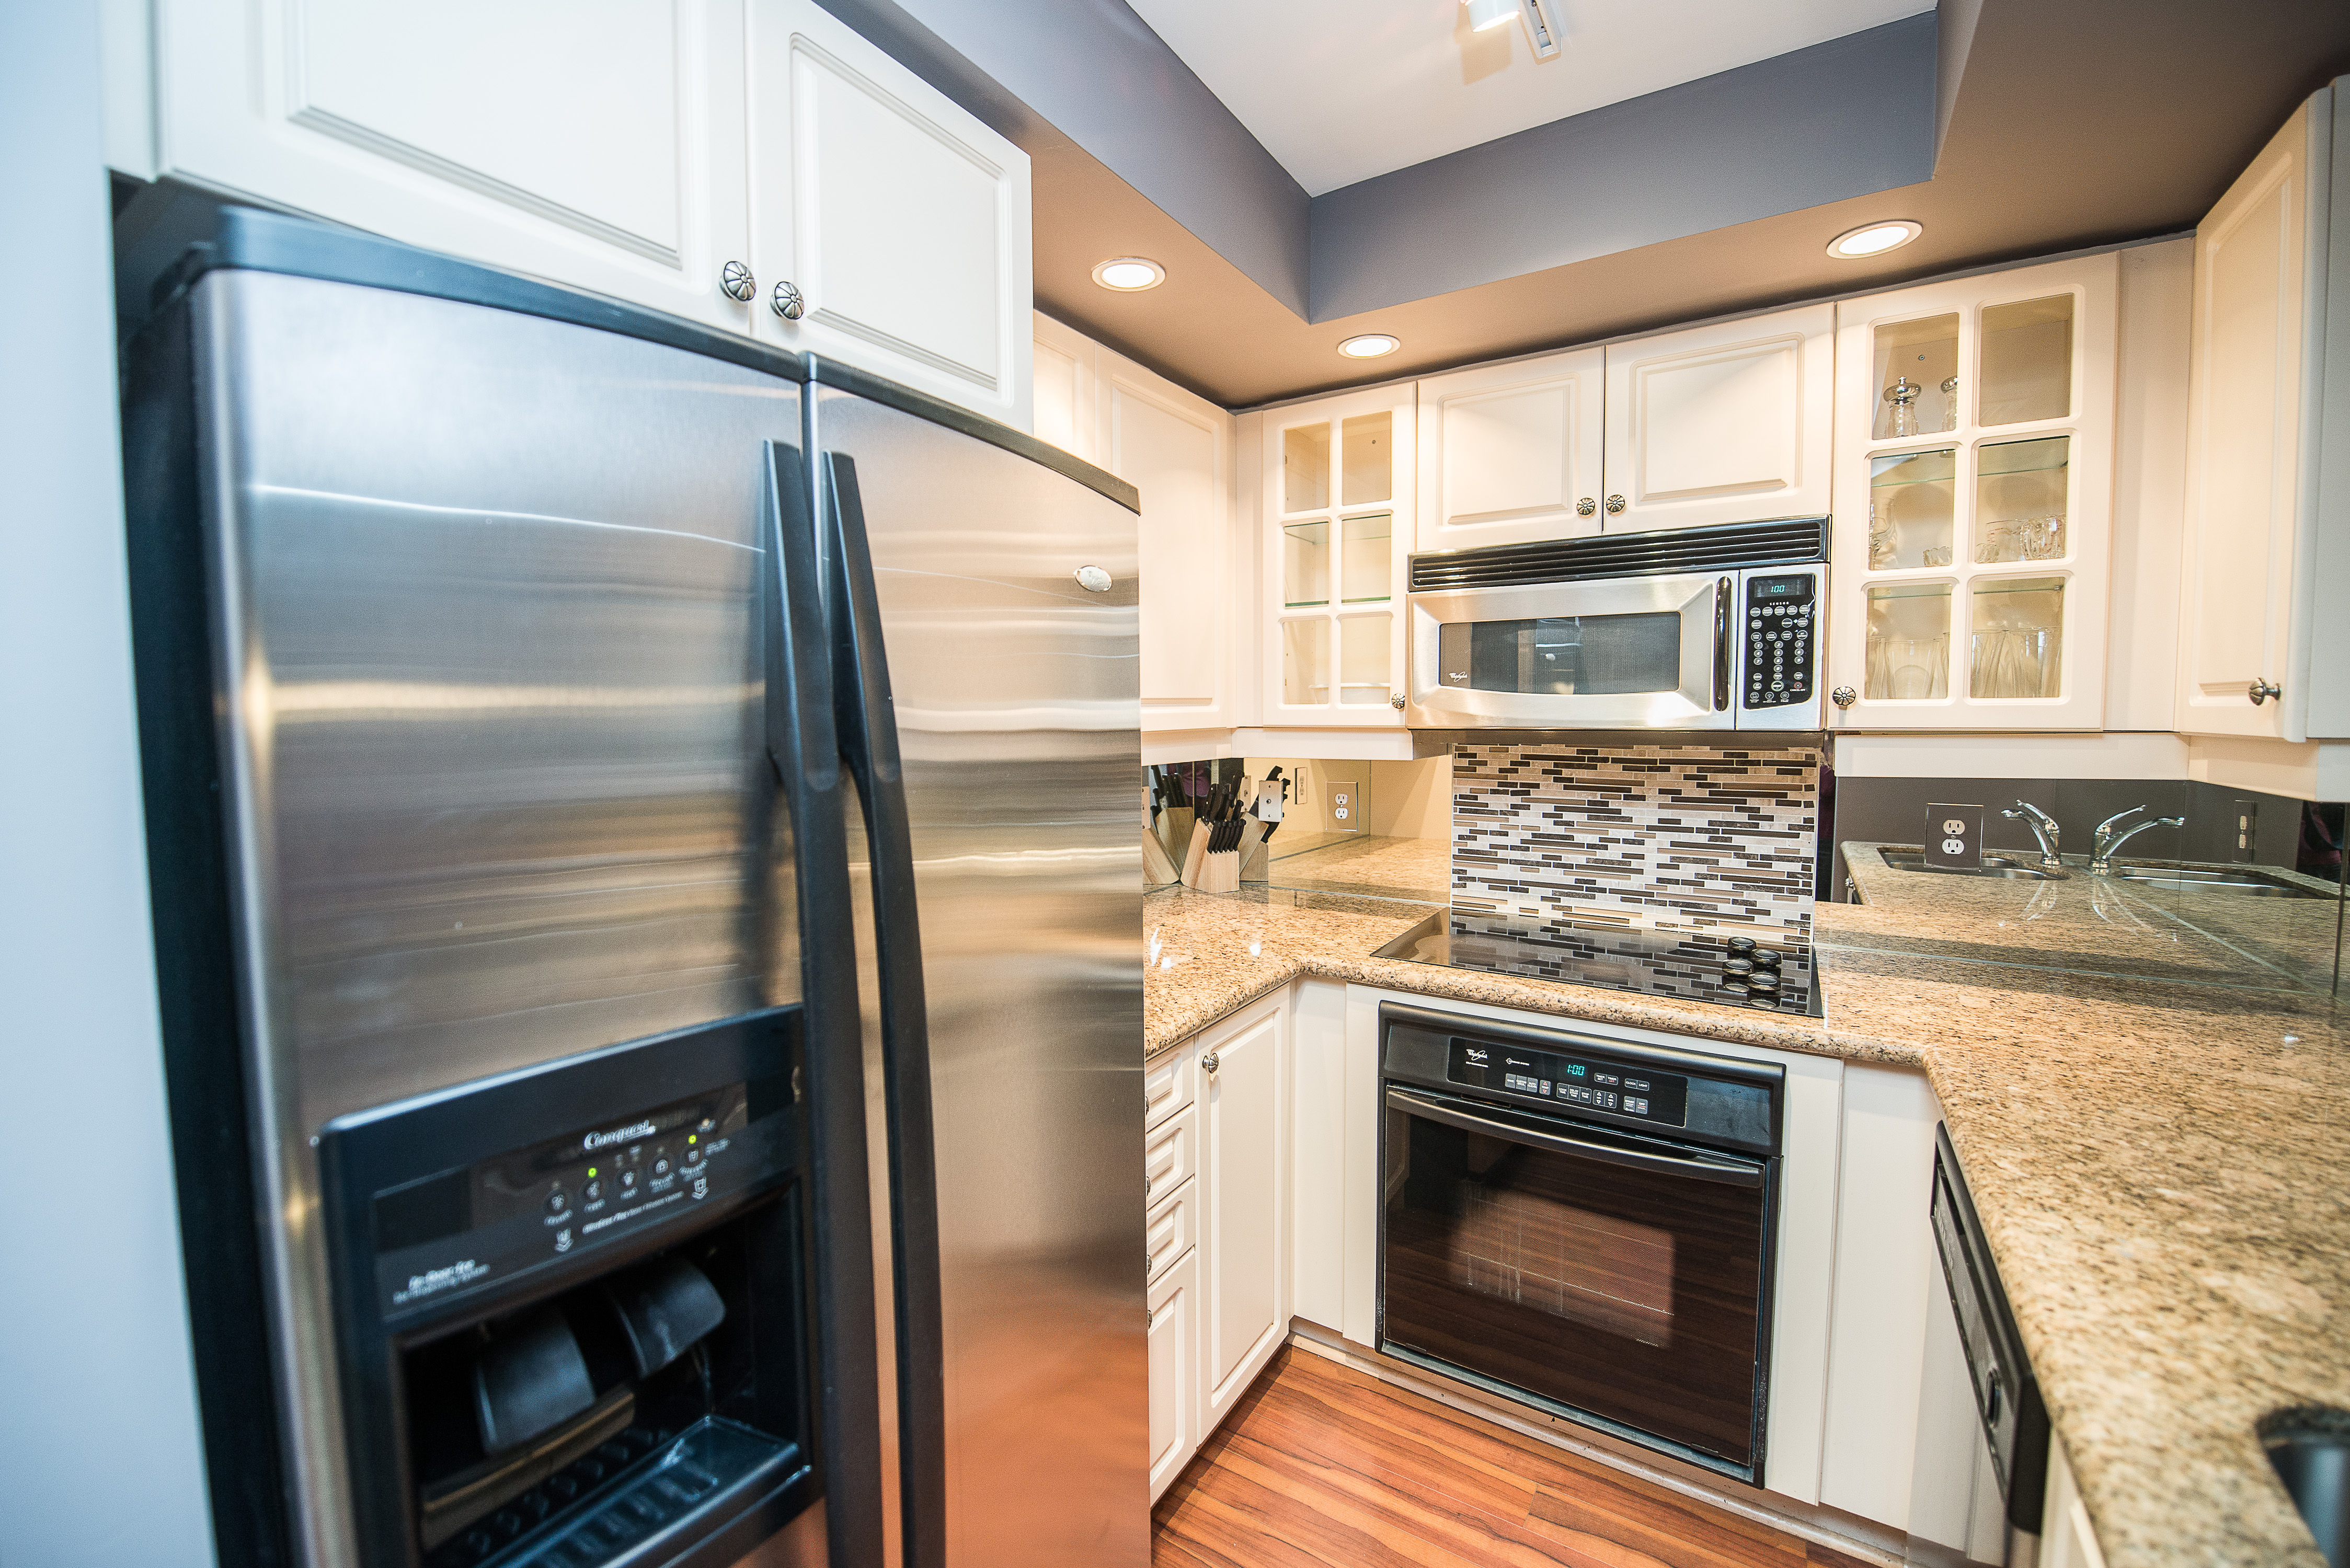 serviced apartments toronto financial district kitchen with fridge and oven